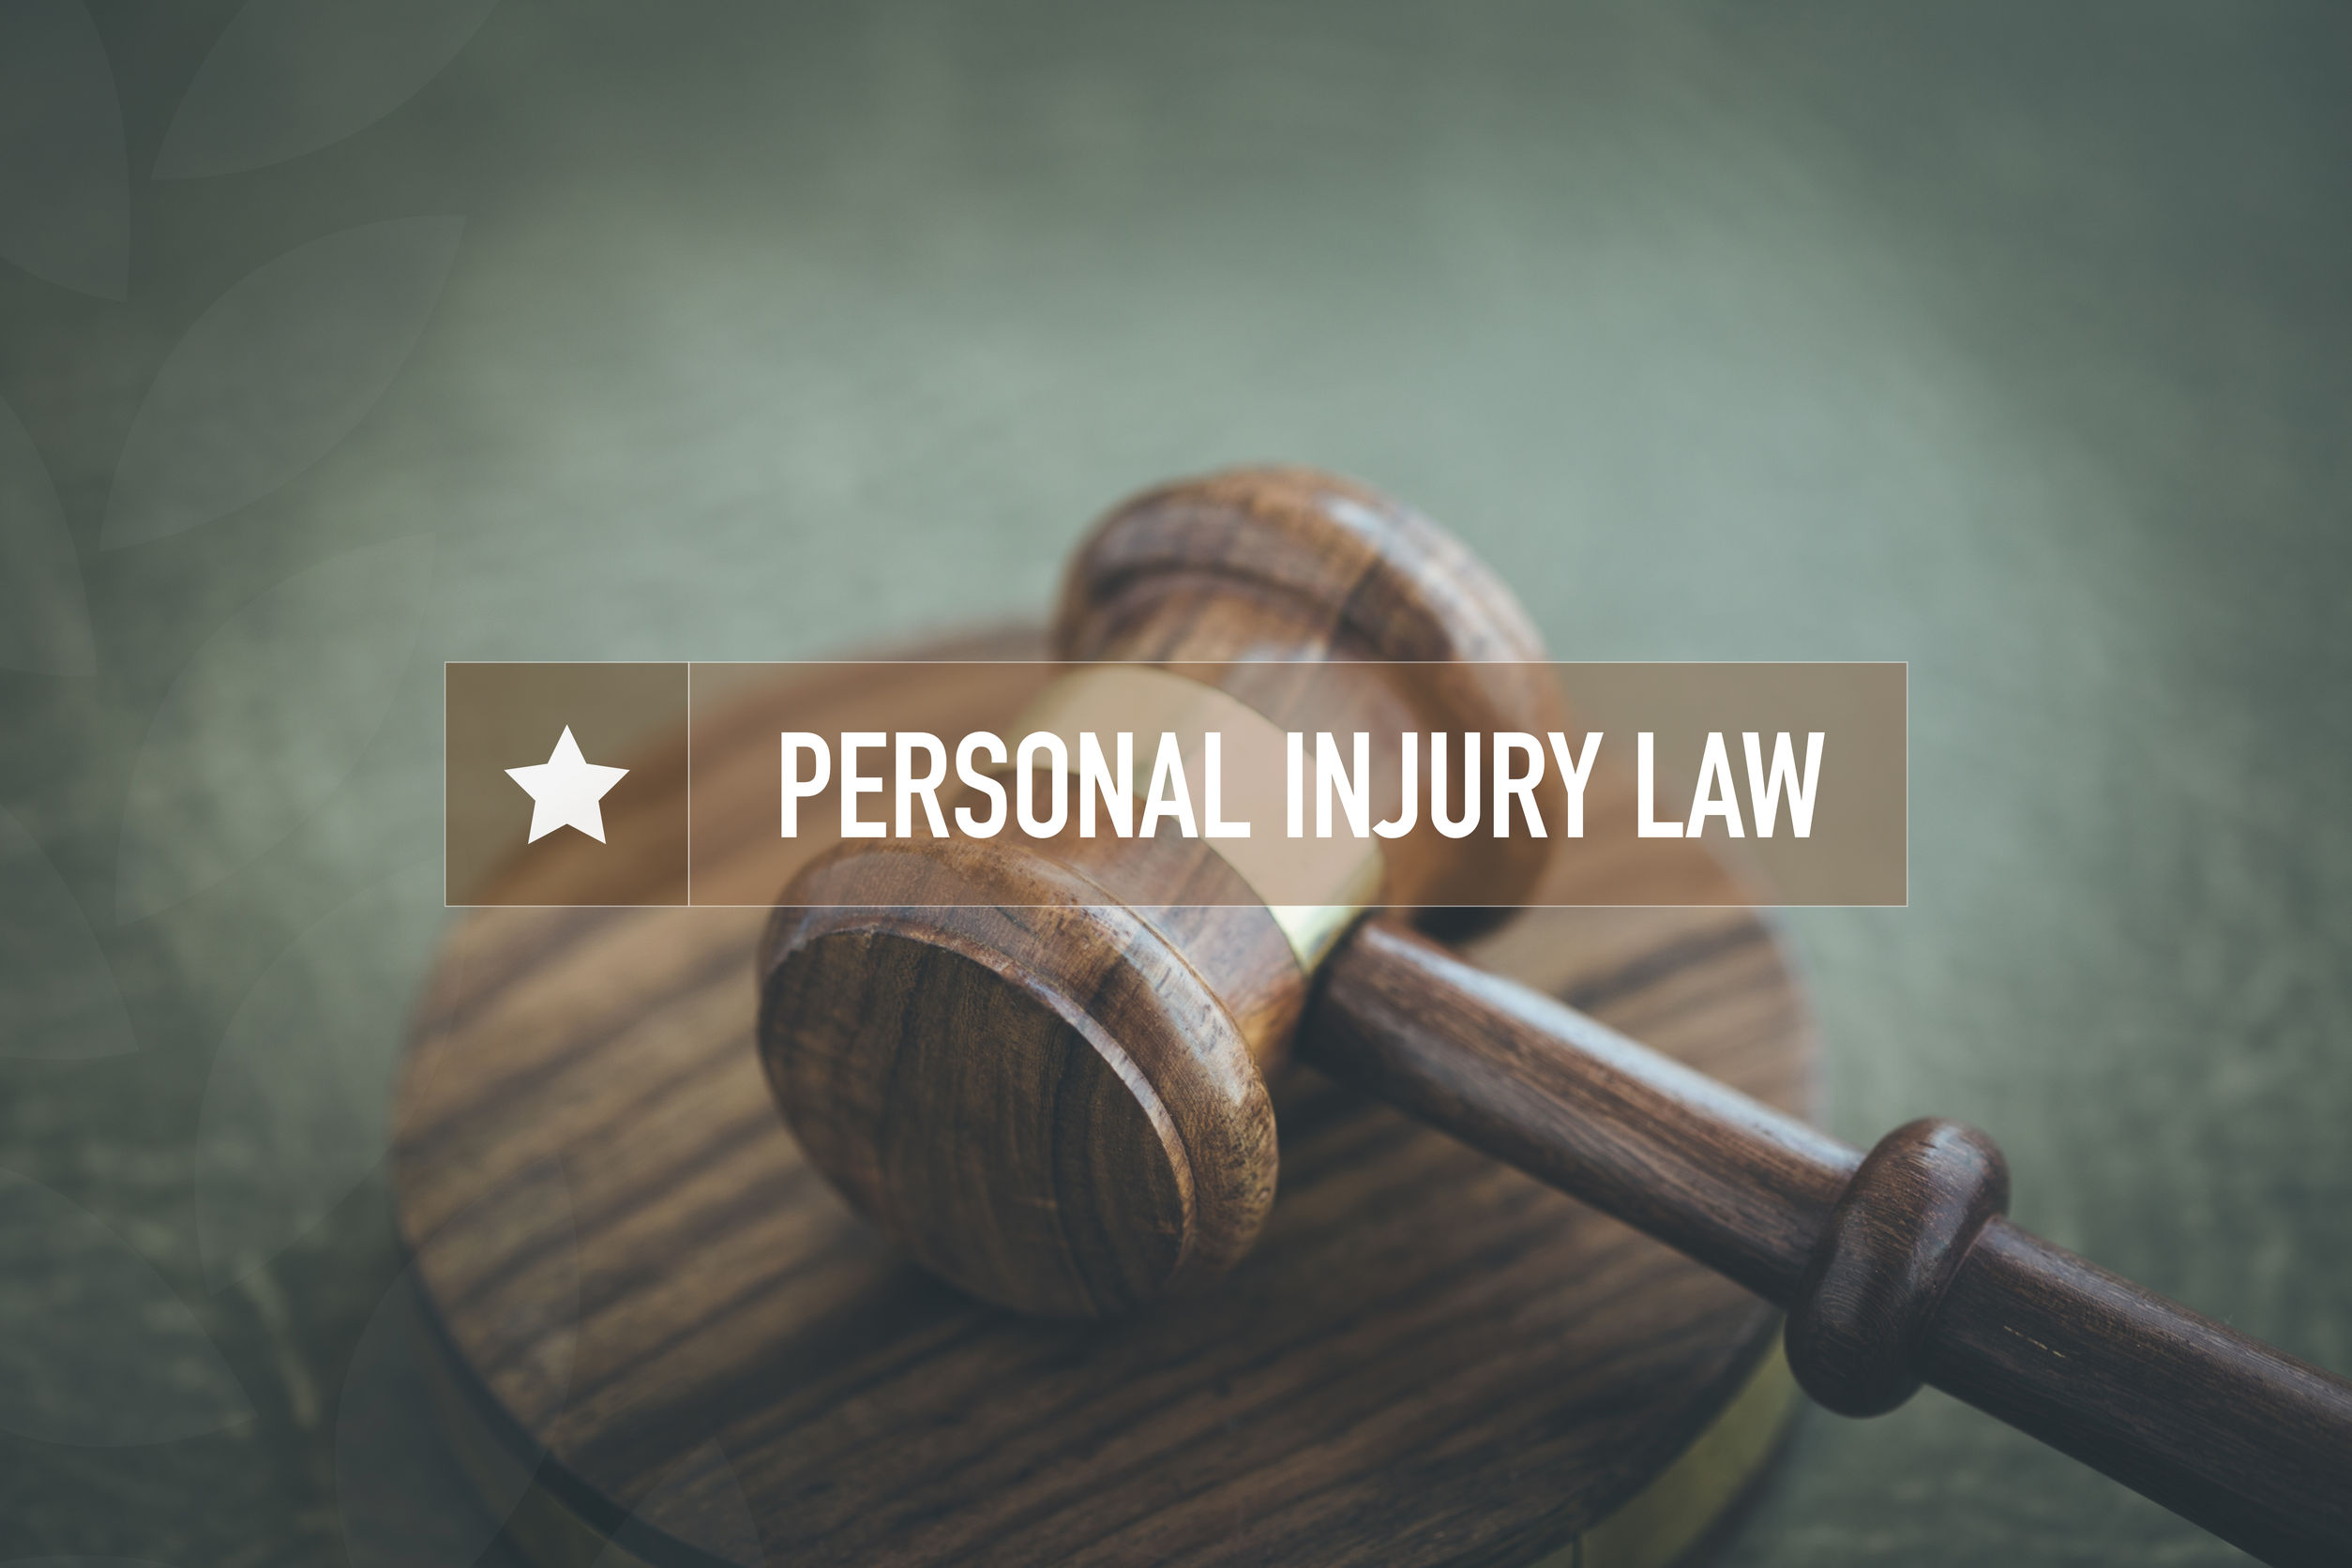 Retaining a Personal Injury Lawyer After a Motor Vehicle Accident